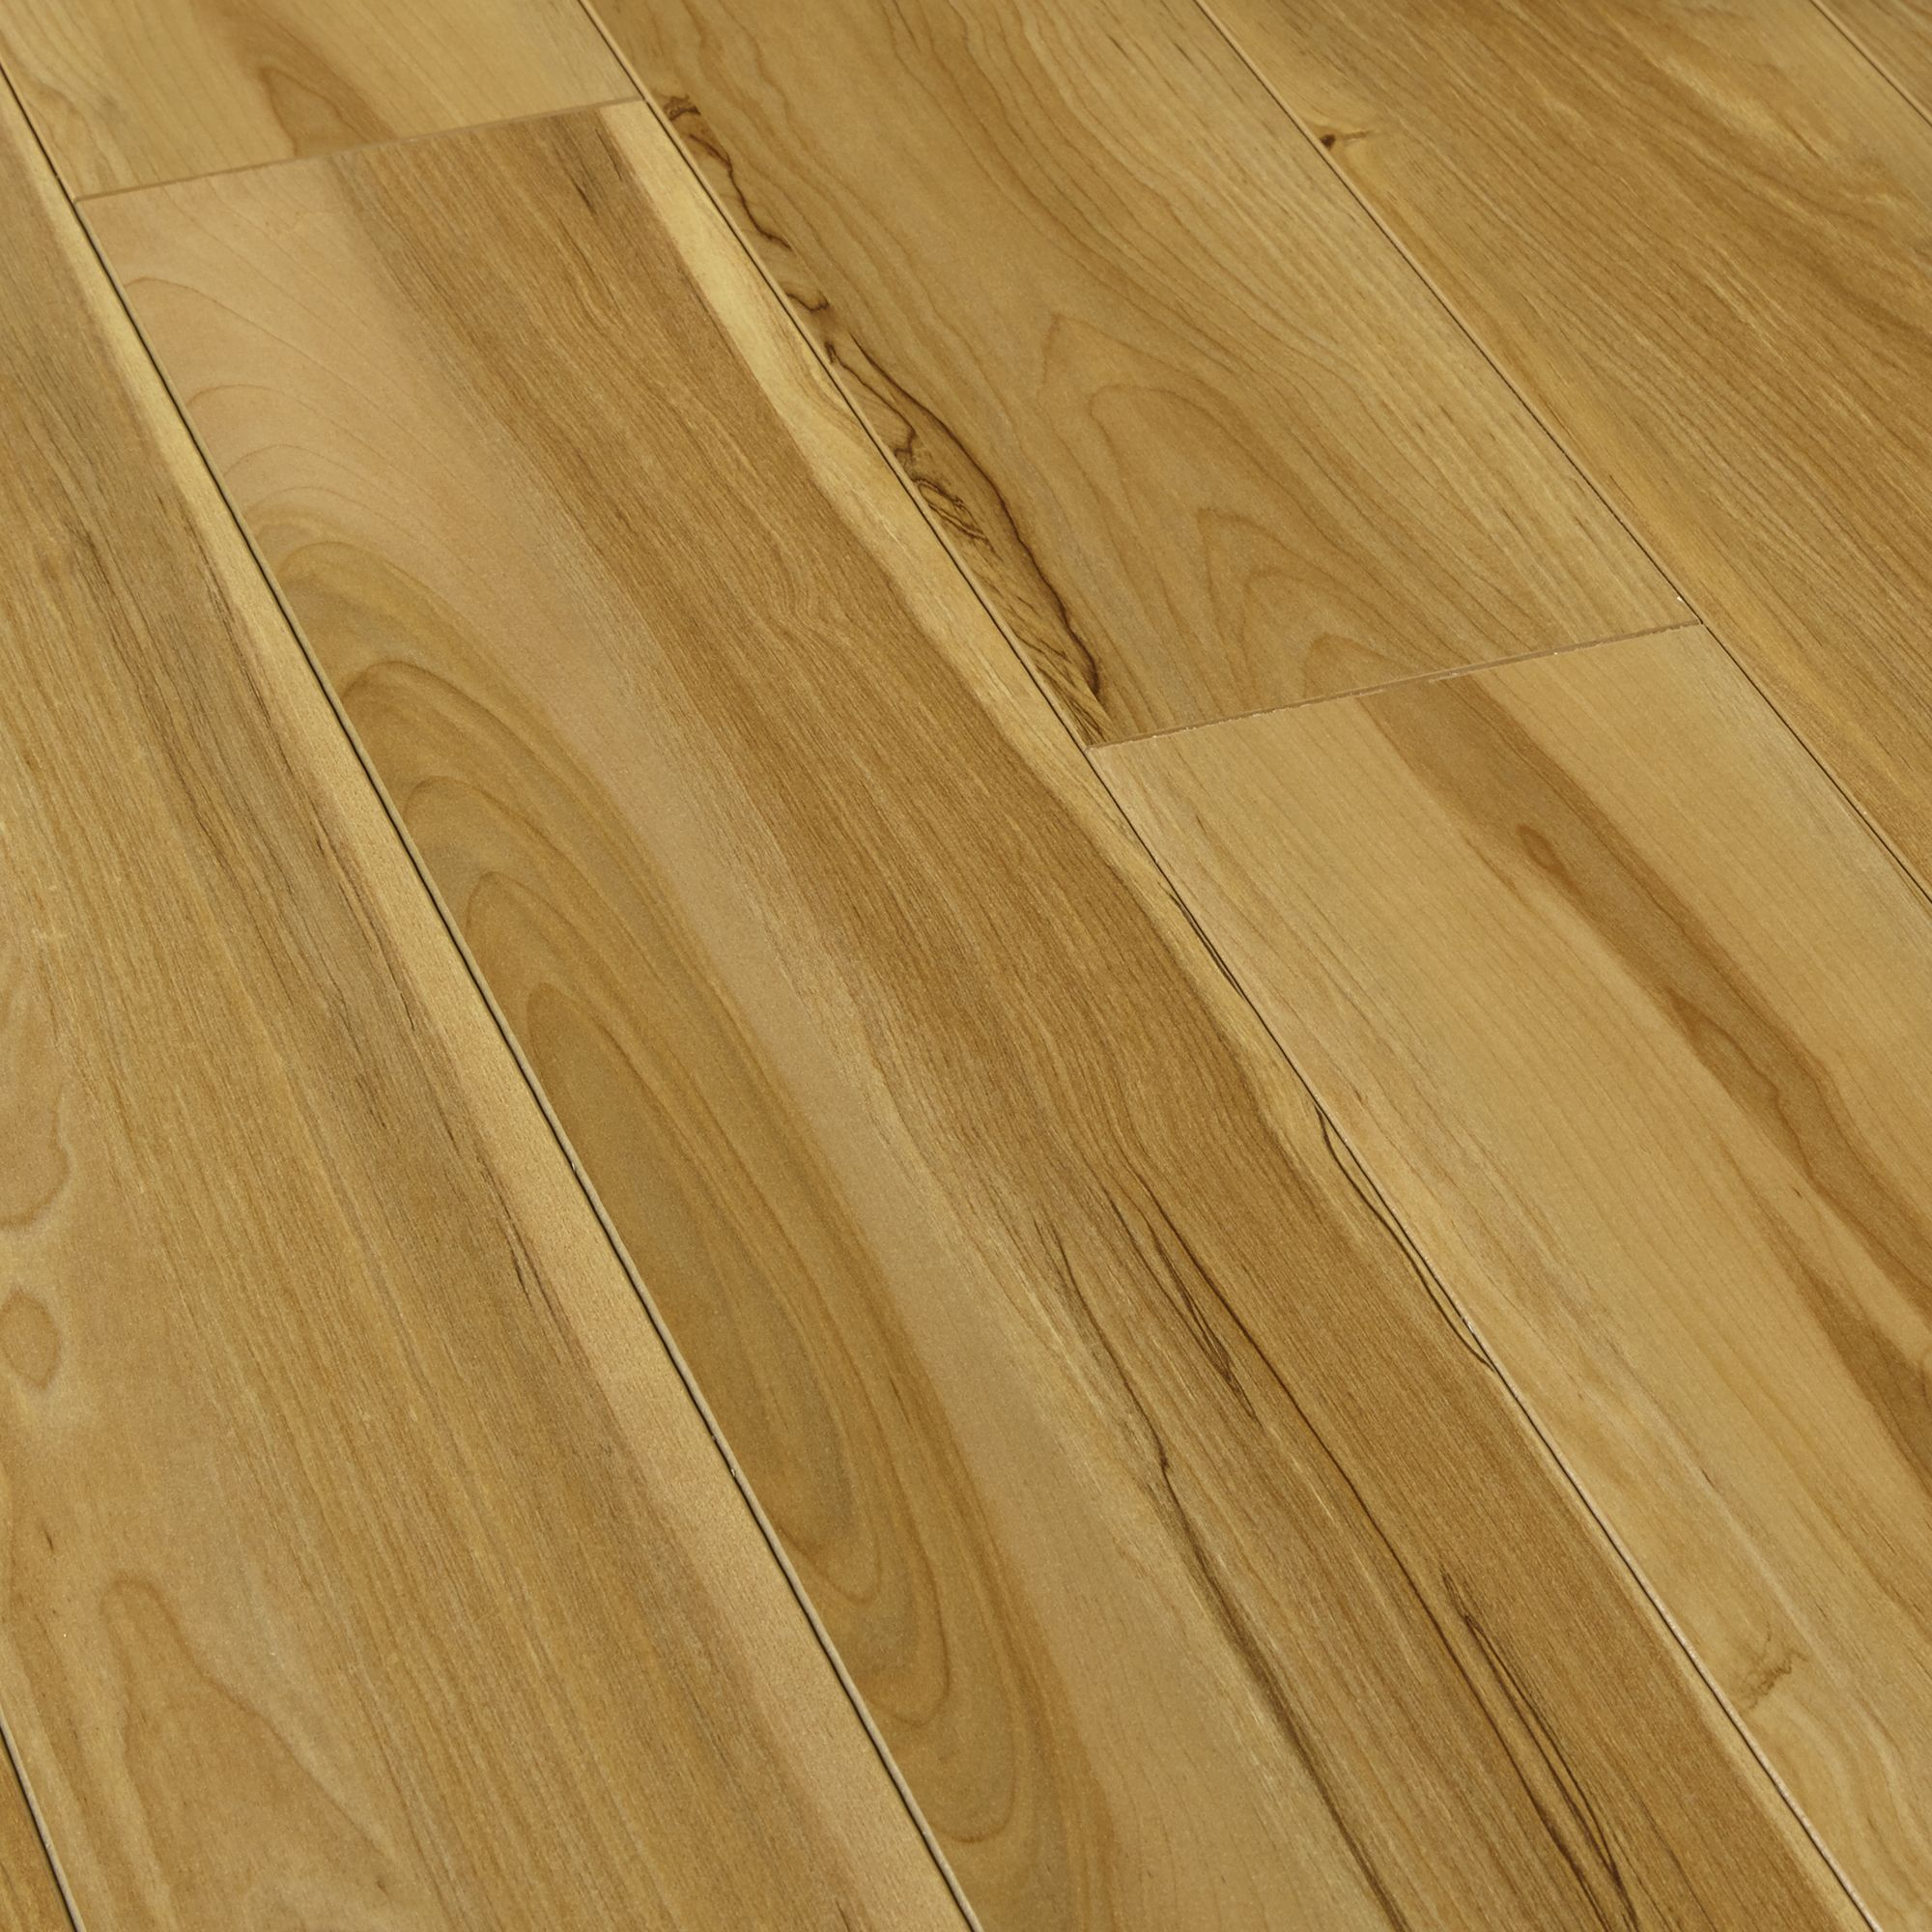 Scherzo natural light walnut effect laminate flooring for Walnut flooring